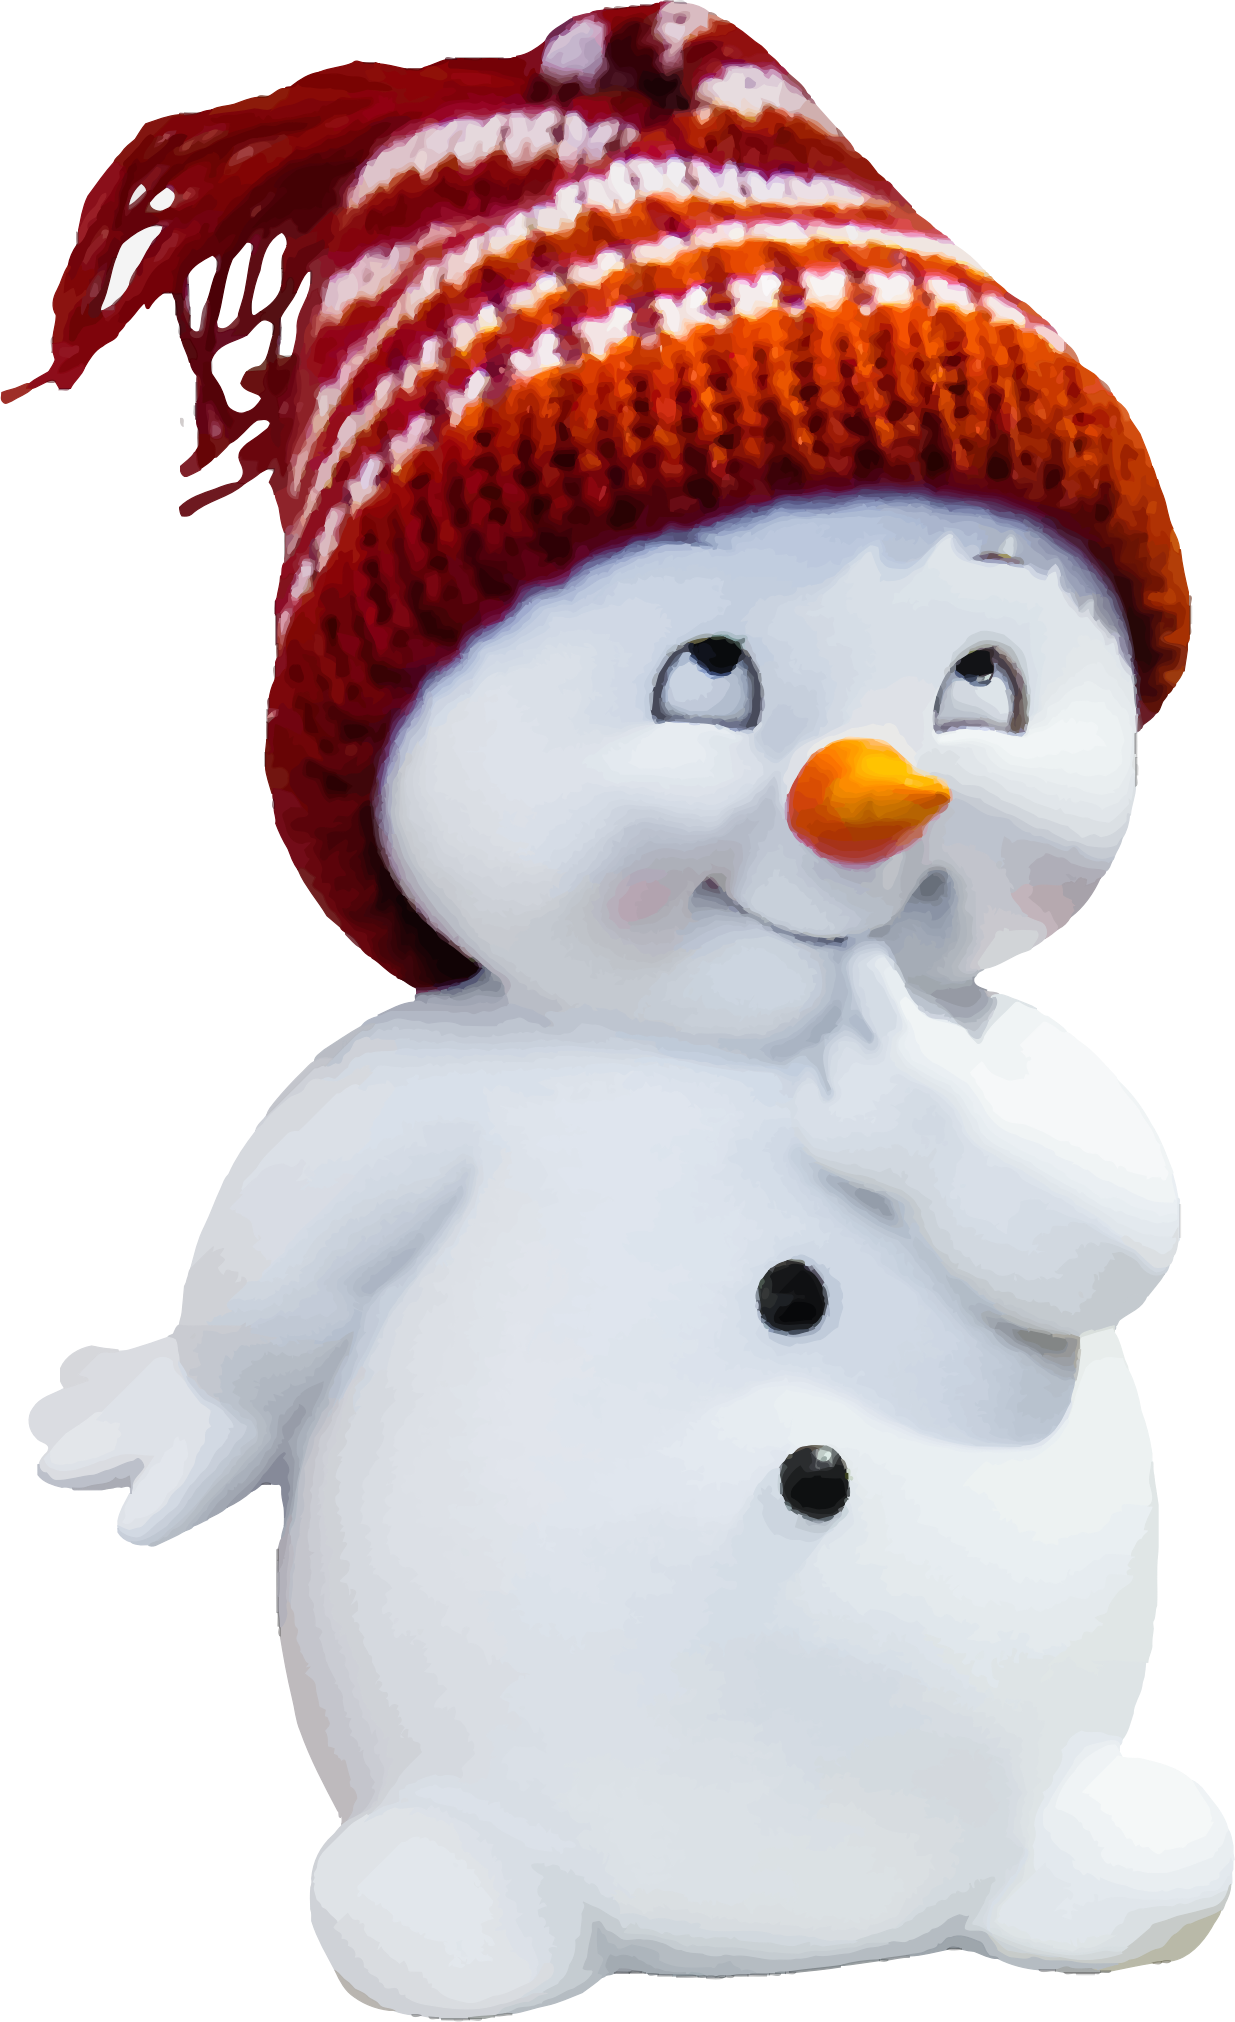 Playful Snow Man by GDJ